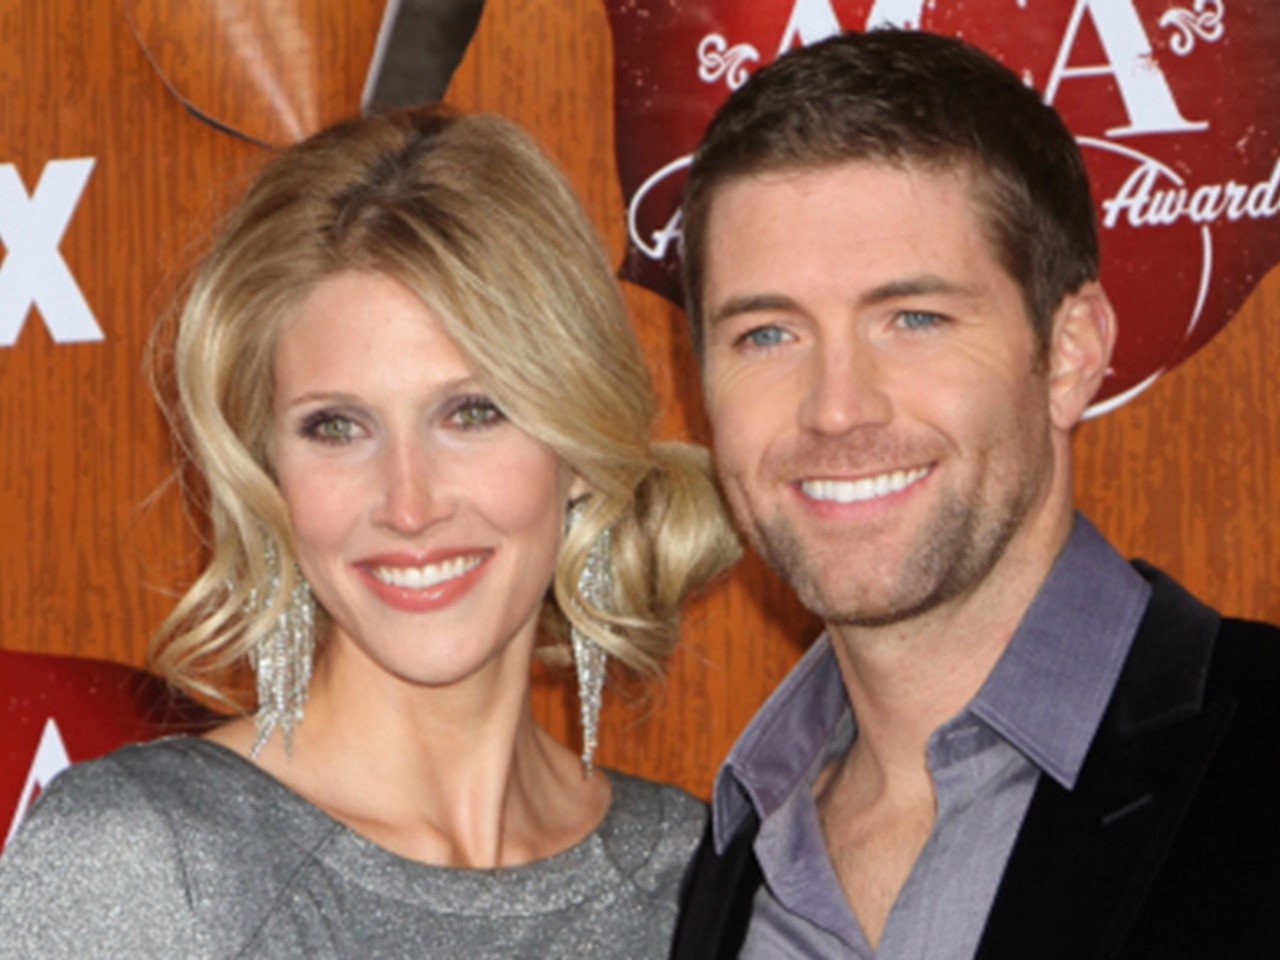 Is josh turner married